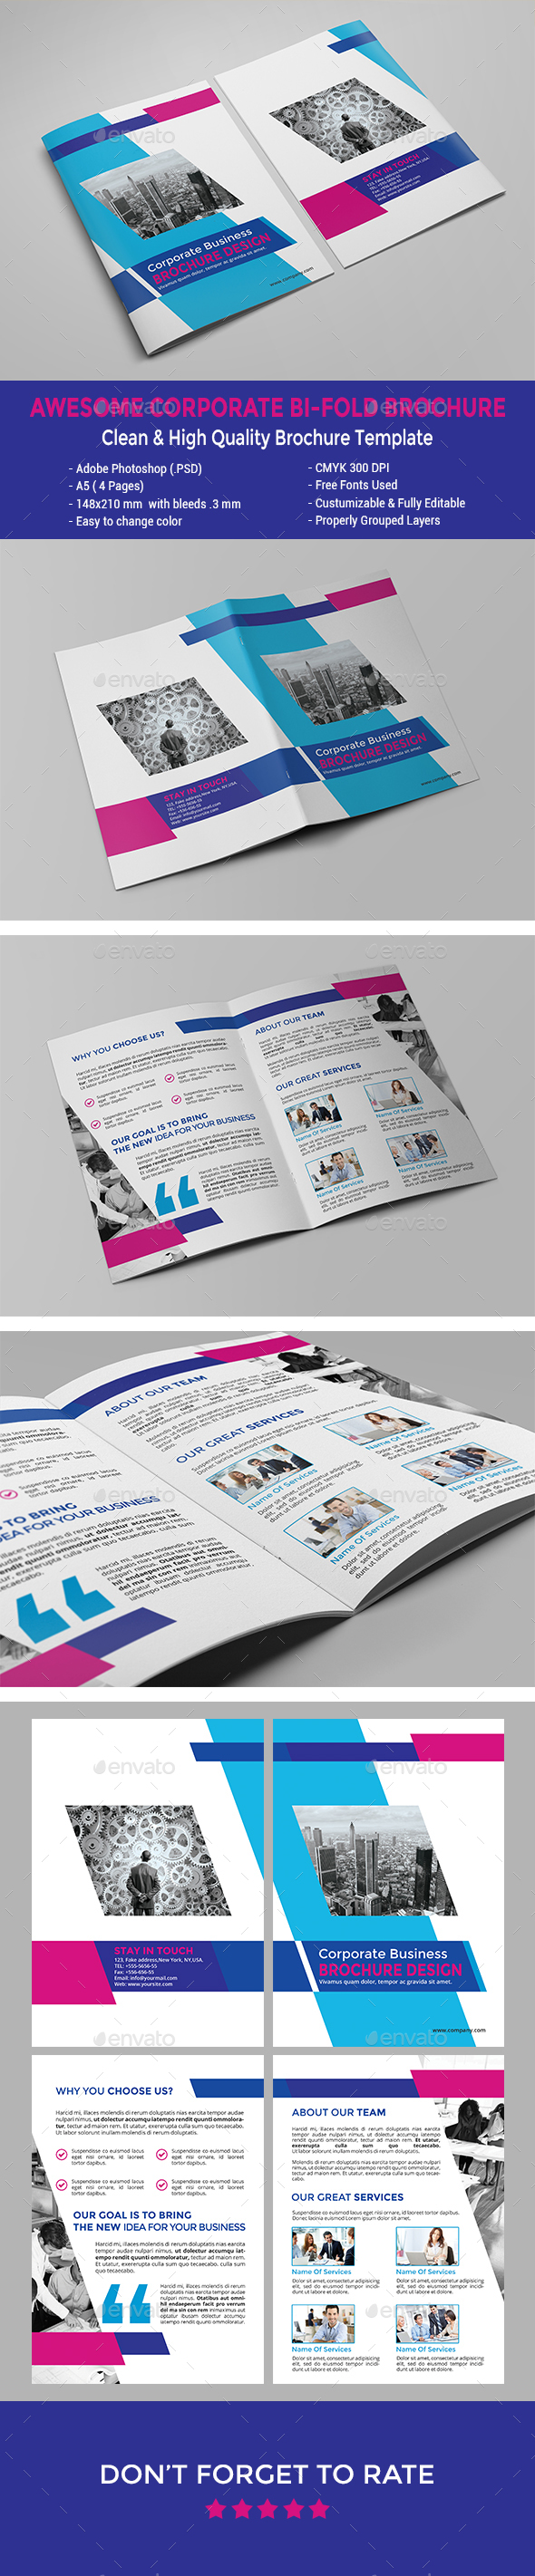 Awesome Corporate Bi-fold Brochure - Corporate Brochures